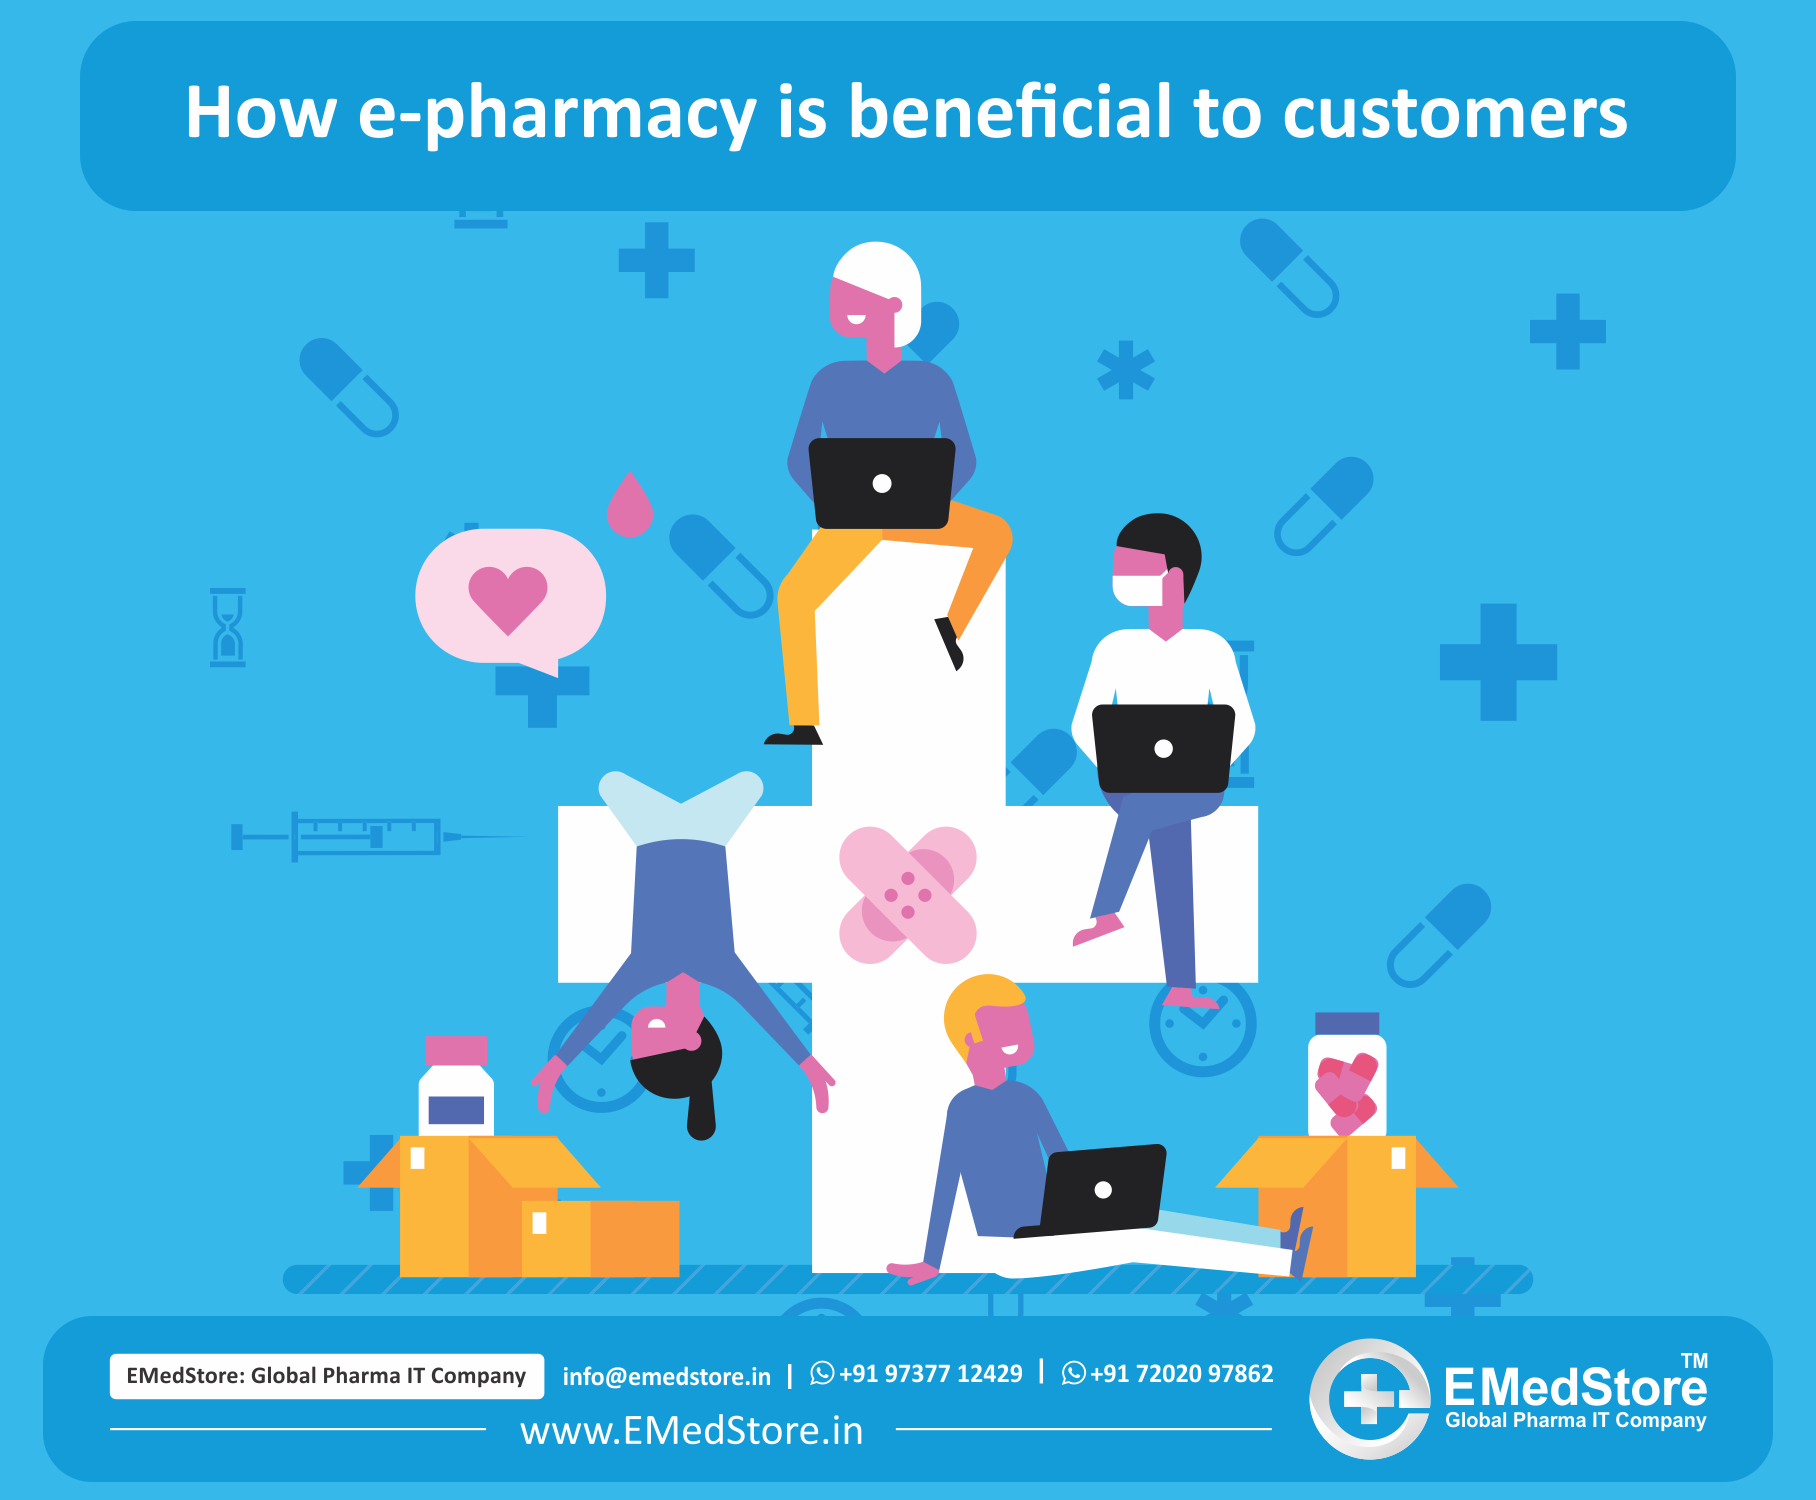 How e-pharmacy is beneficial to customers